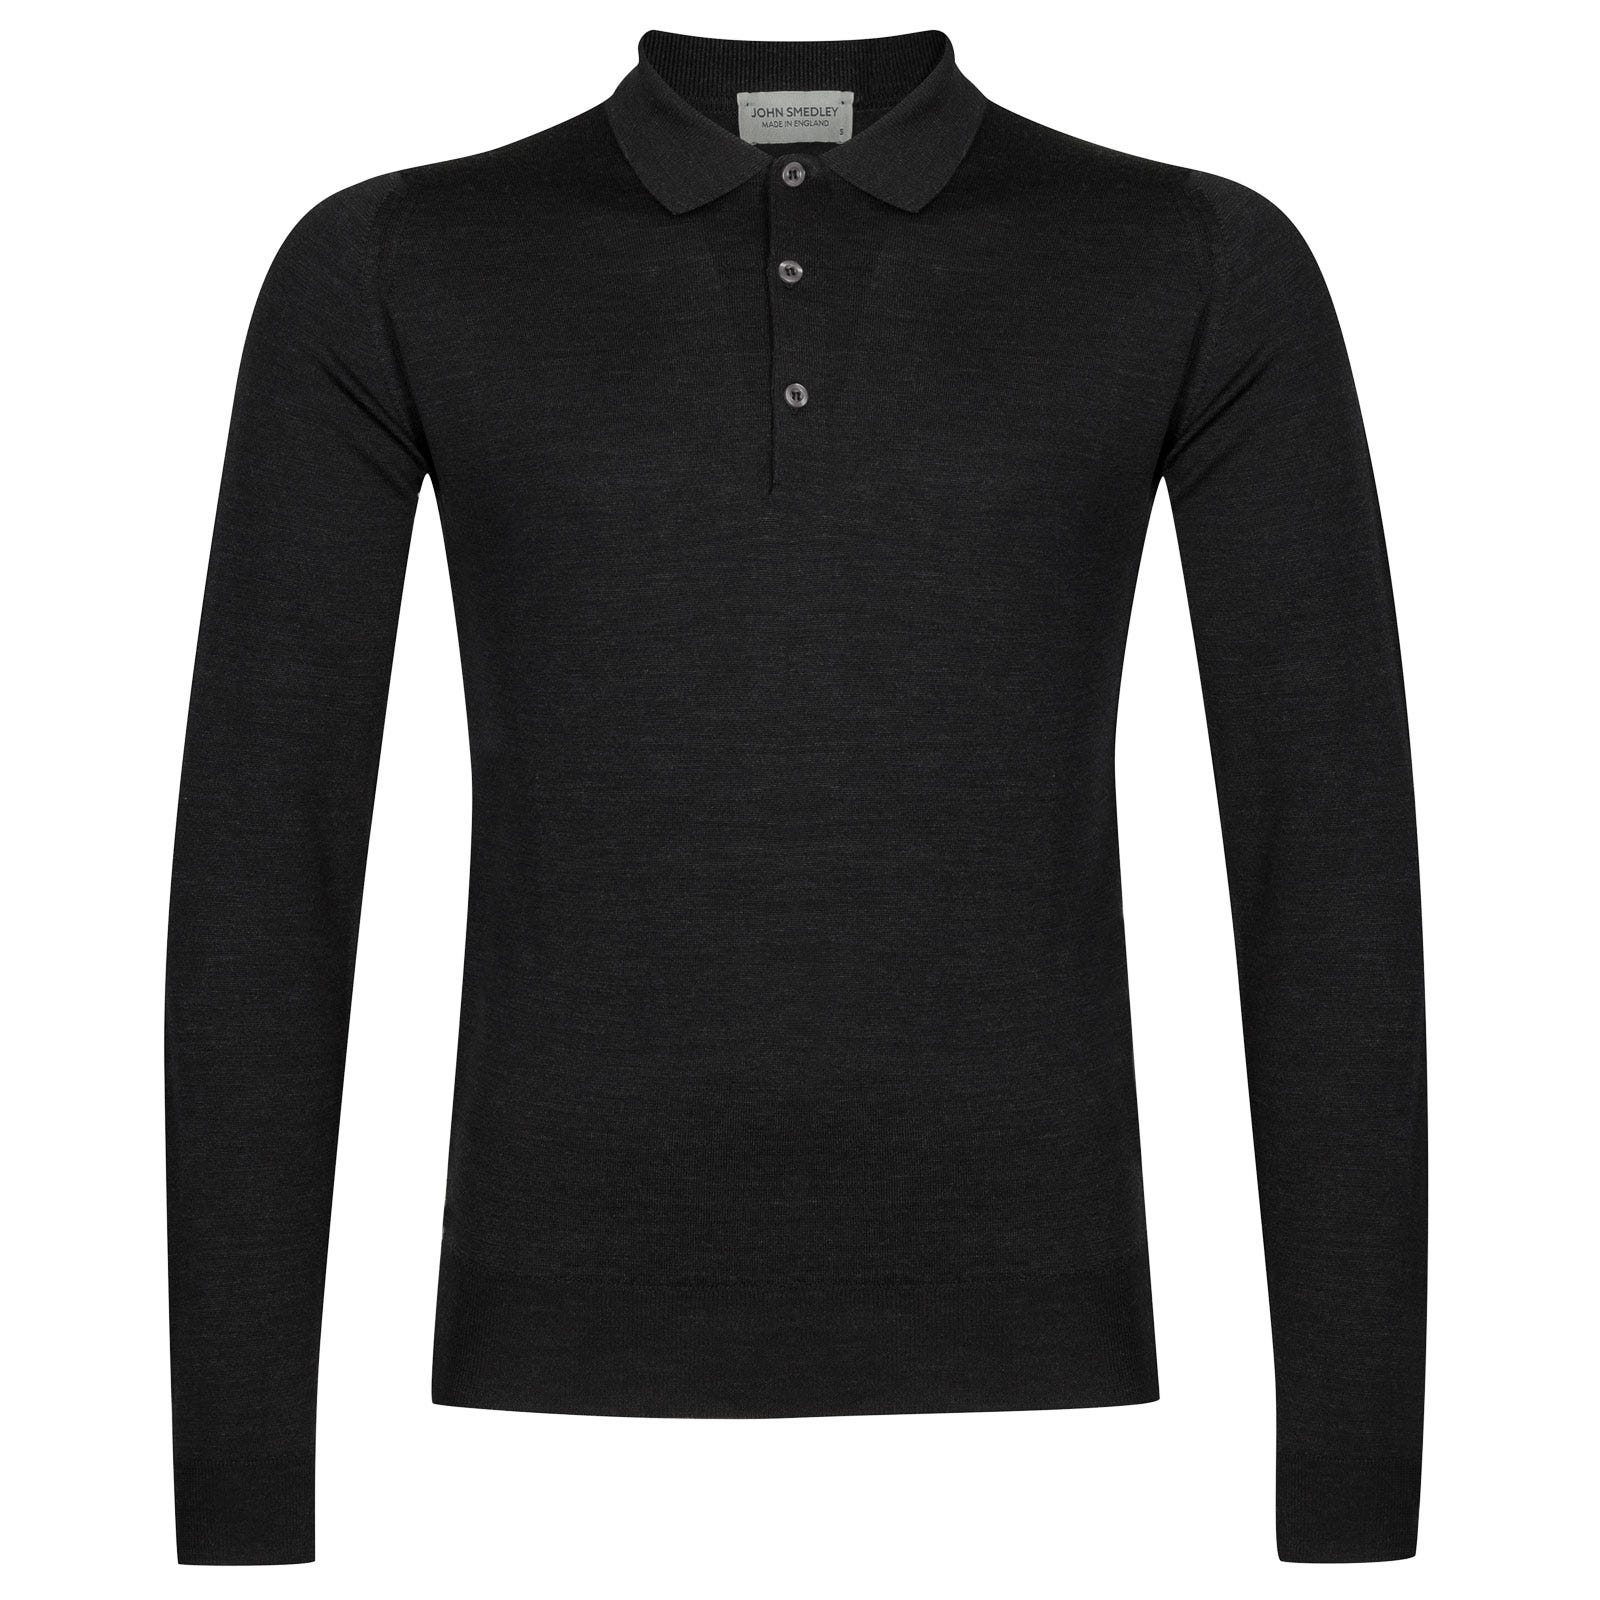 John Smedley belper Merino Wool Shirt in Hepburn Smoke-XXL